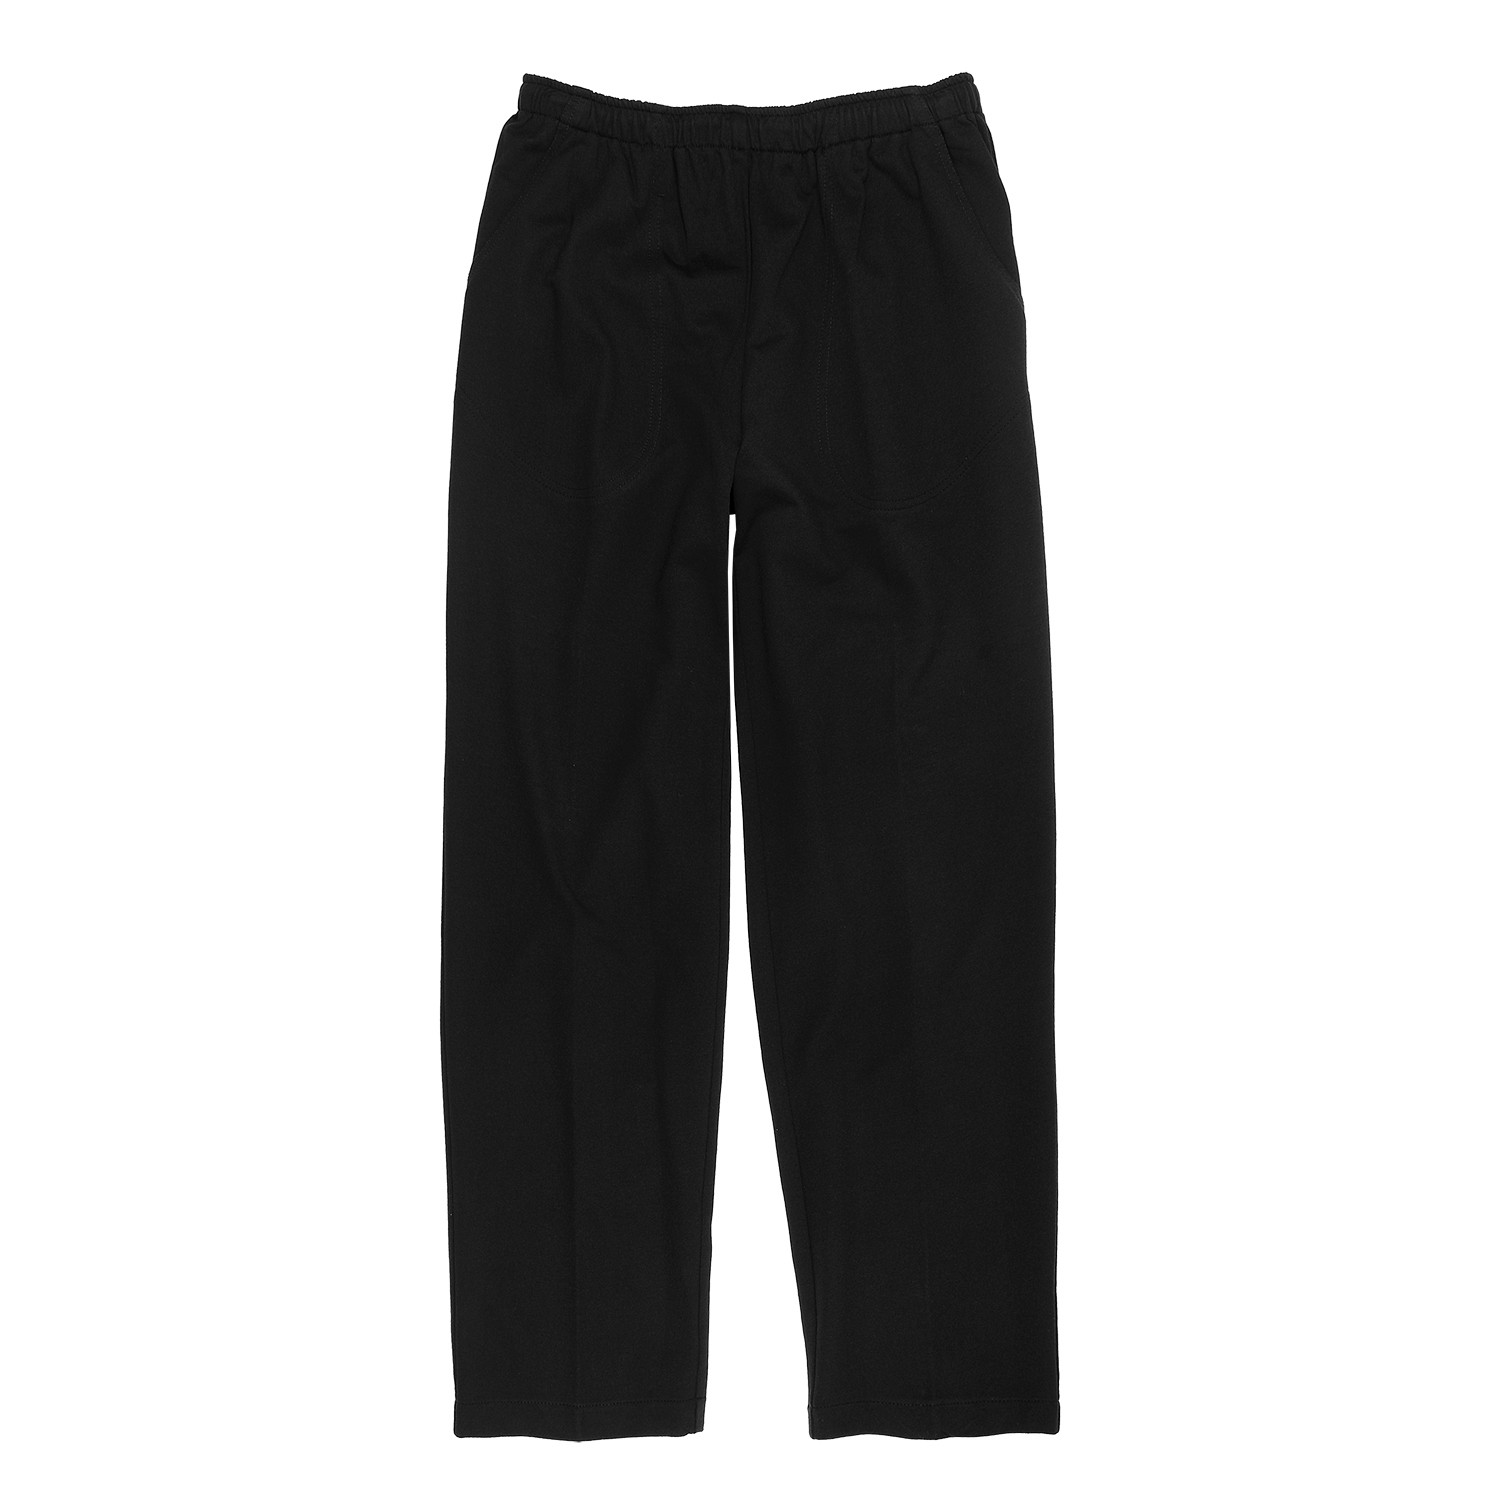 Detail Image to Sports and leisure sweatpants in black, plus sizes by AUTHENTIC KLEIN